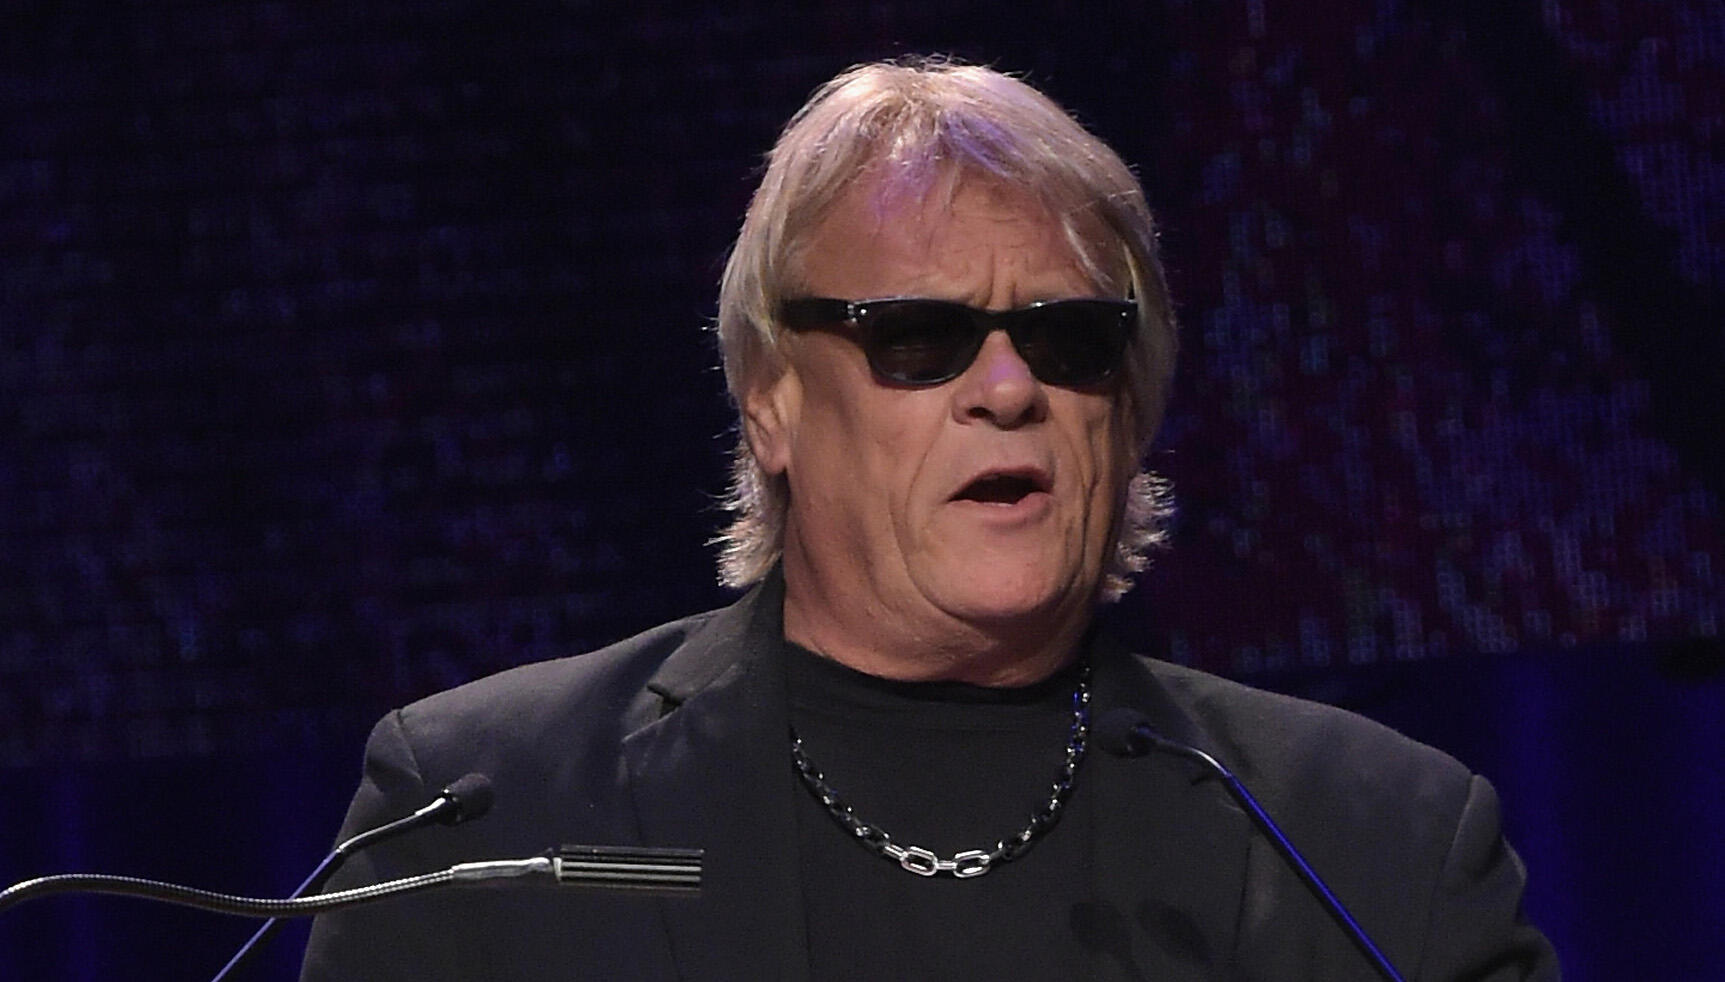 Ex-Bad Company Singer Brian Anthony Howe Has Died At 66